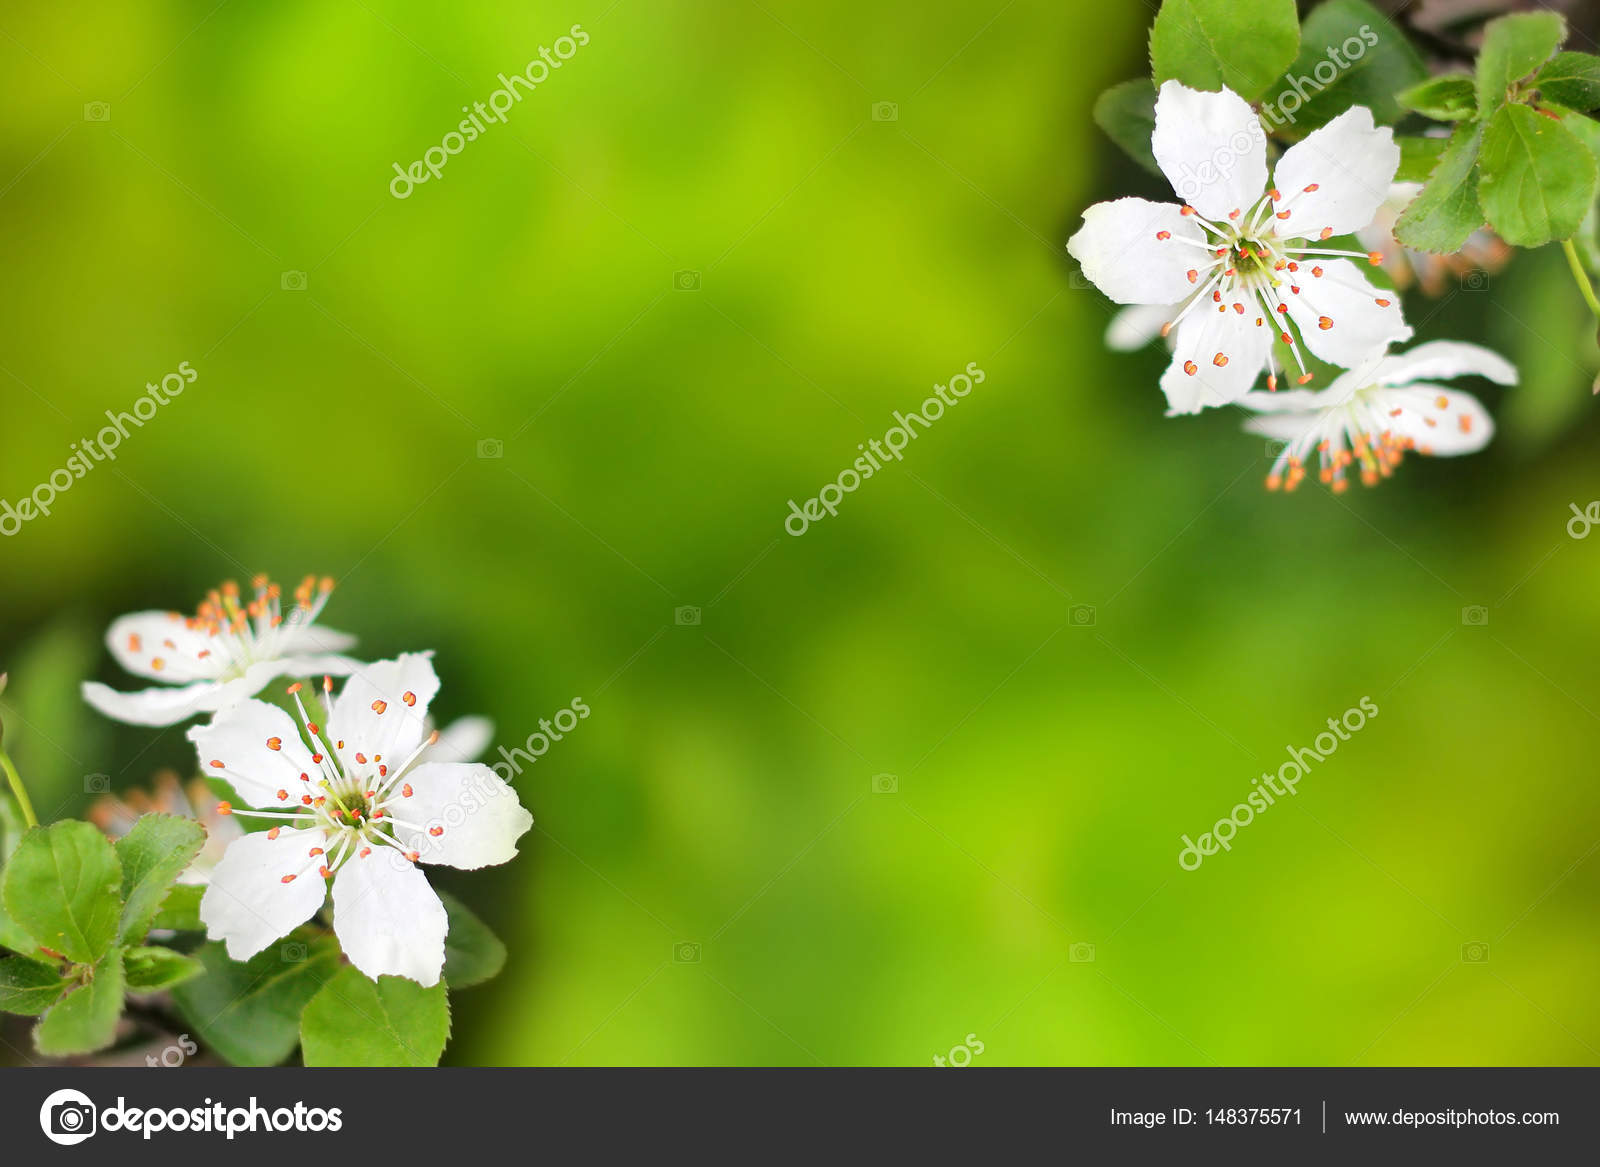 Spring Flowers Blooming White Cherry On A Blurred Green Backgrou